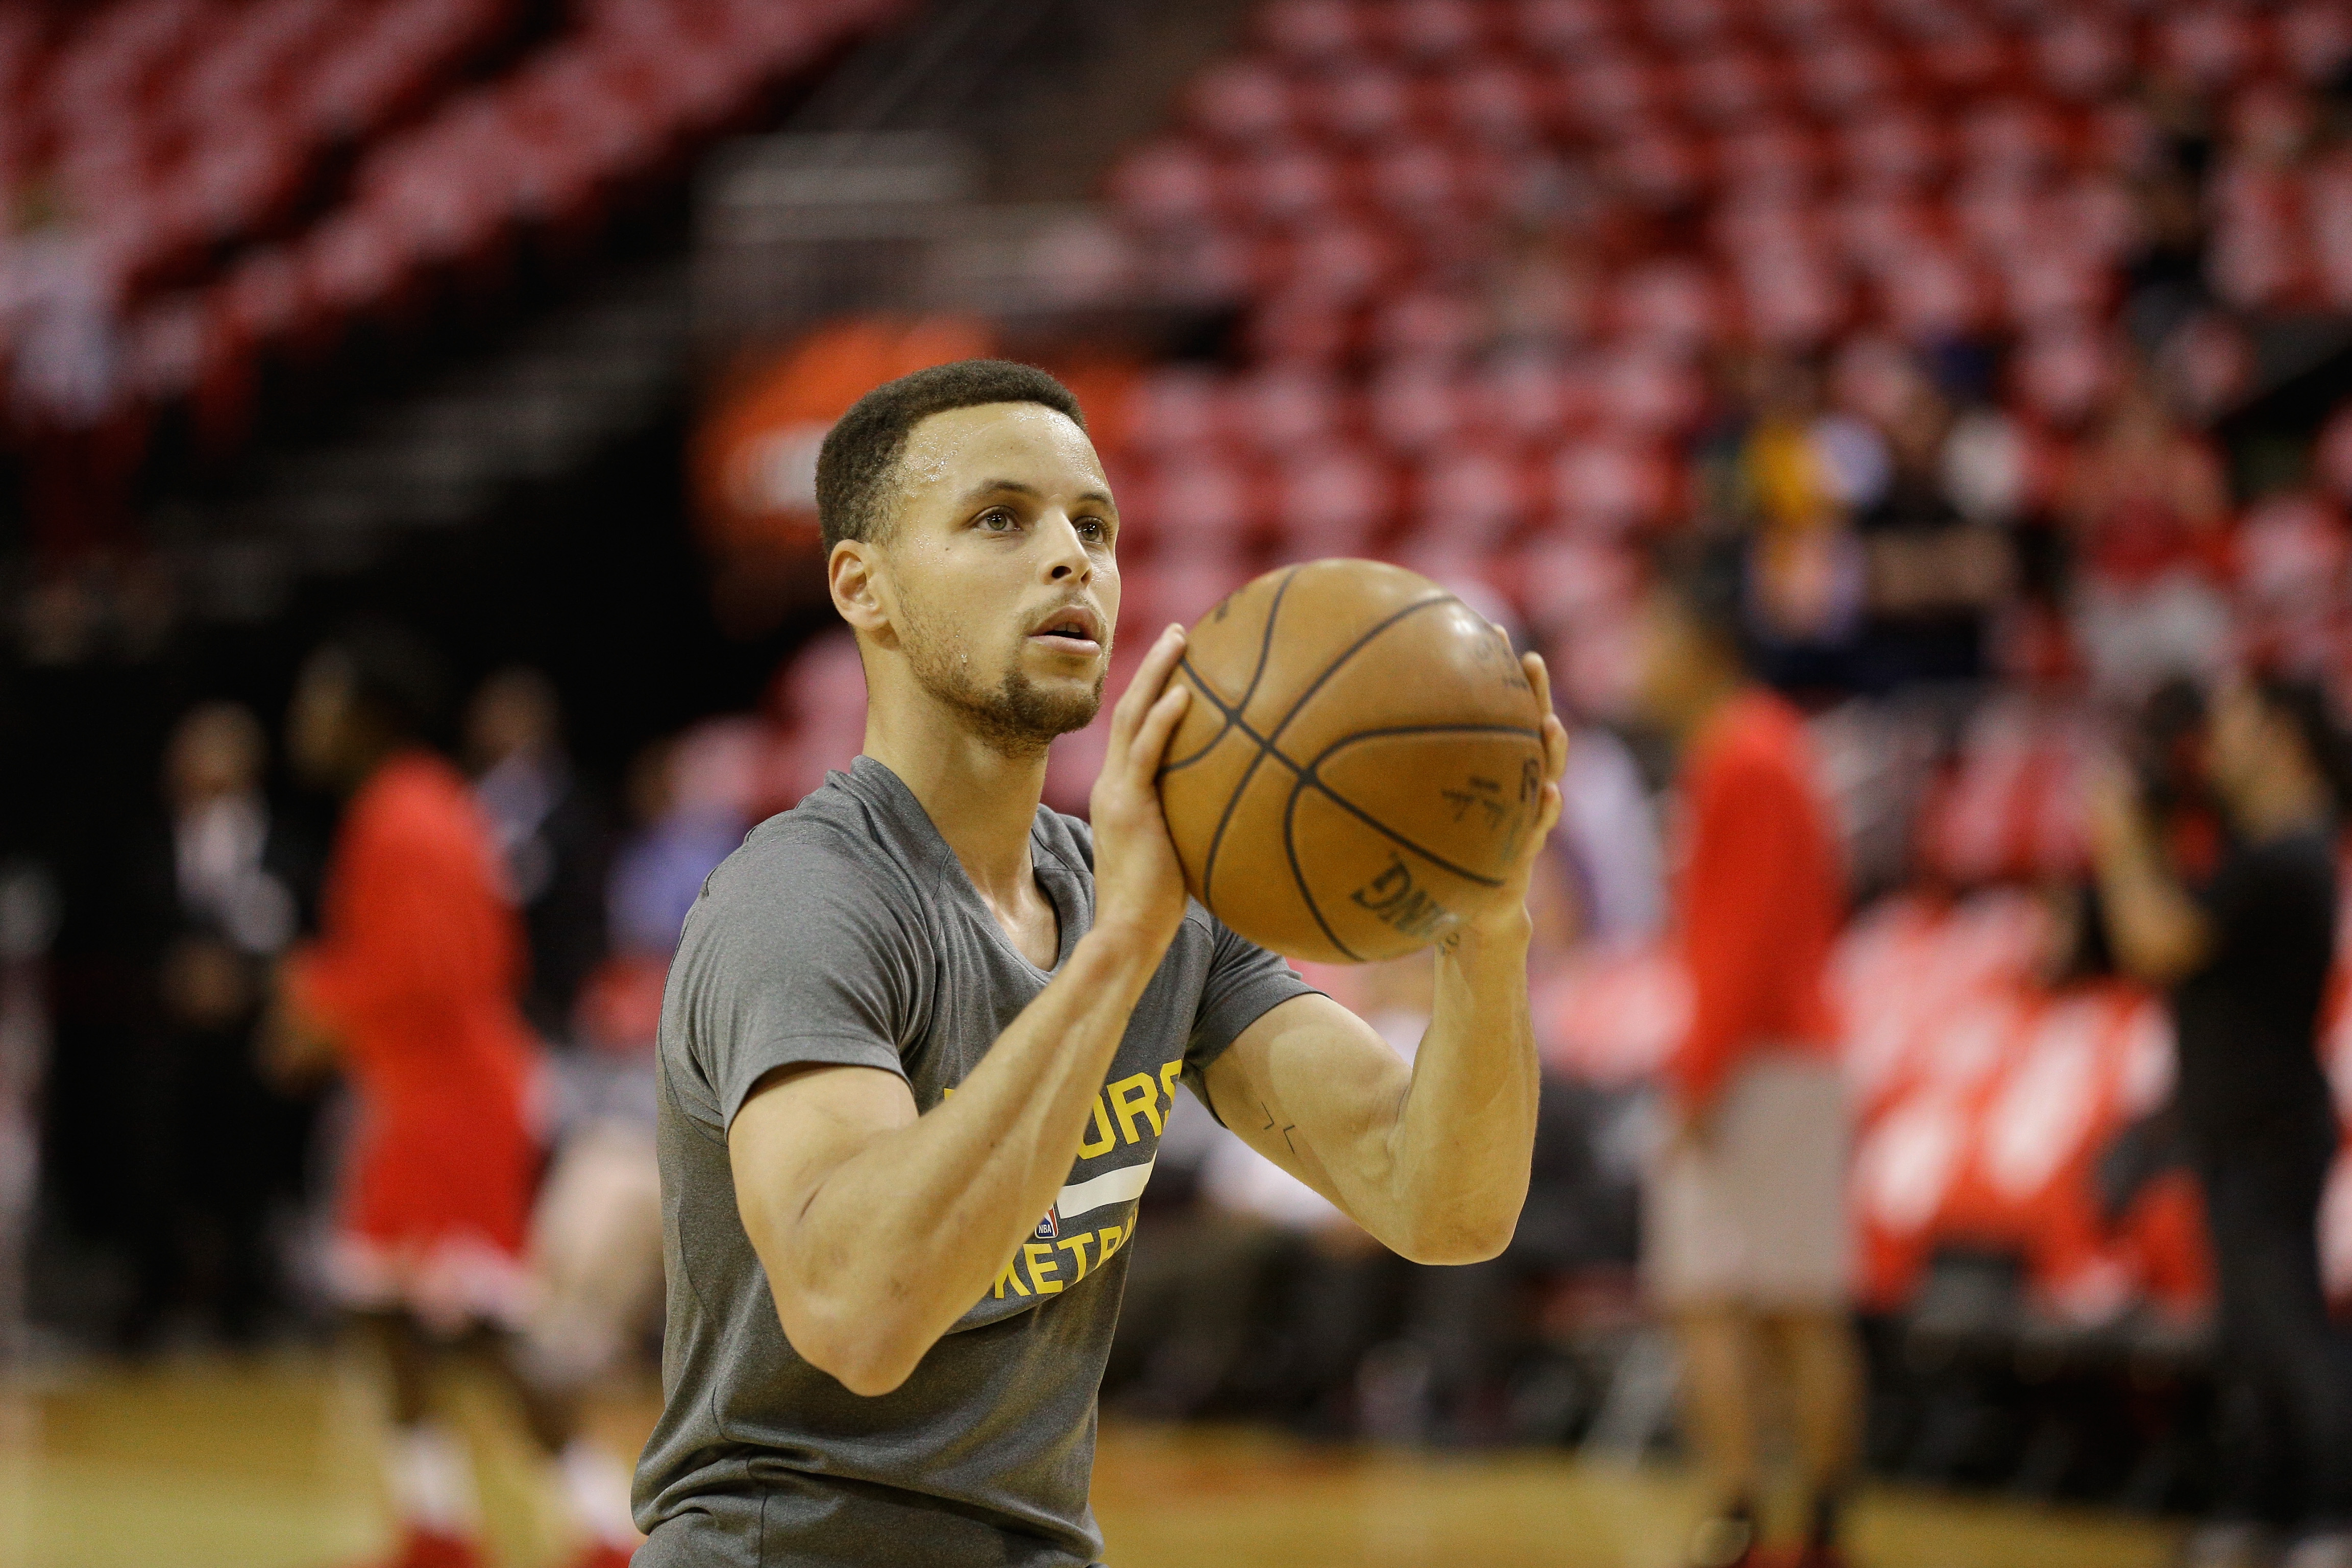 HOUSTON, TX - APRIL 24:  Stephen Curry #30 of the Golden State Warriors warms up before playing the Houston Rockets in game 4 of the first round of the Western Conference playoffs at Toyota Center on April 24, 2016 in Houston, Texas. (Photo by Bob Levey/G